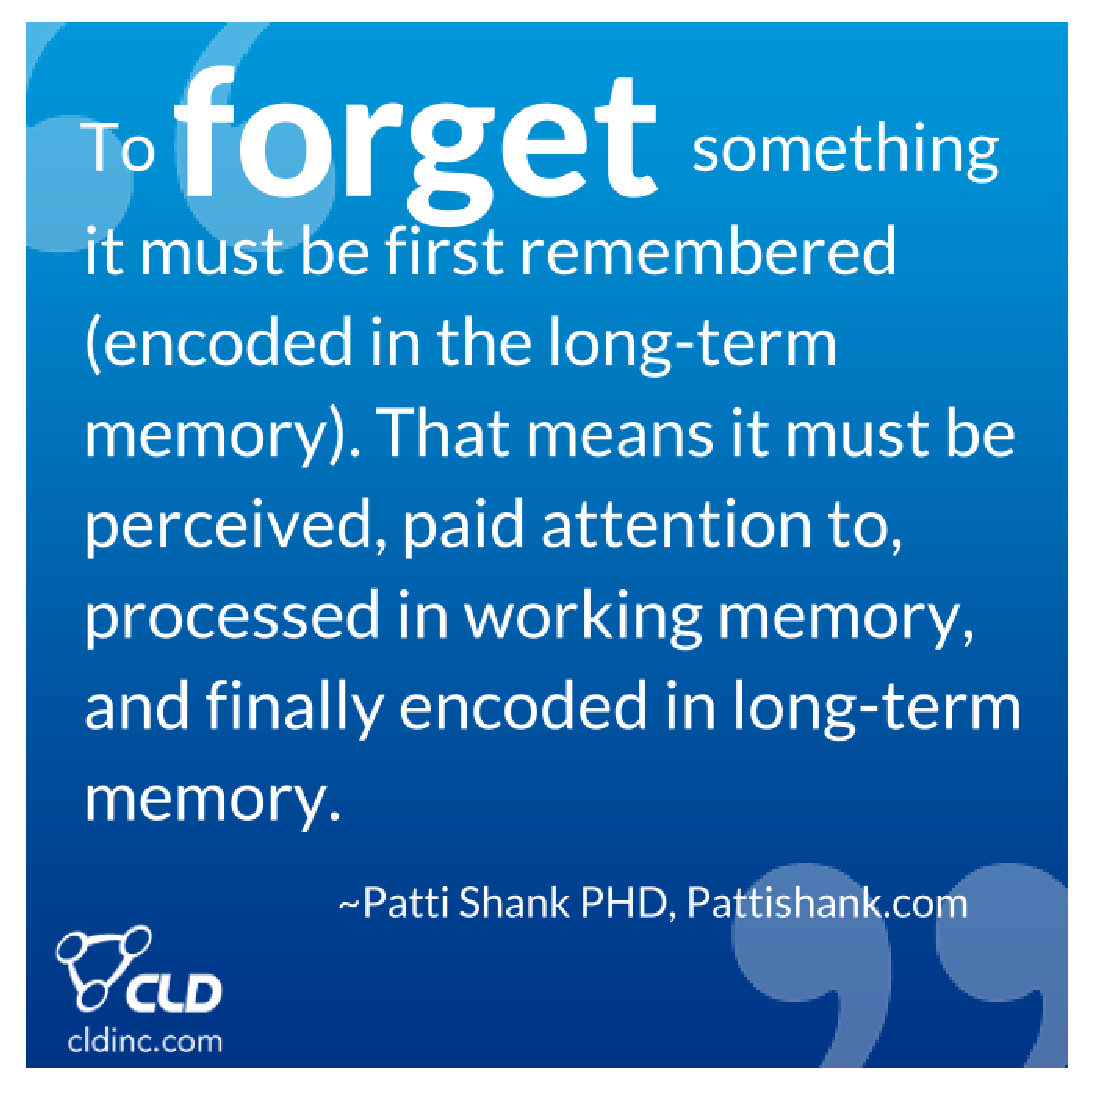 To forget something it must first be remembered.